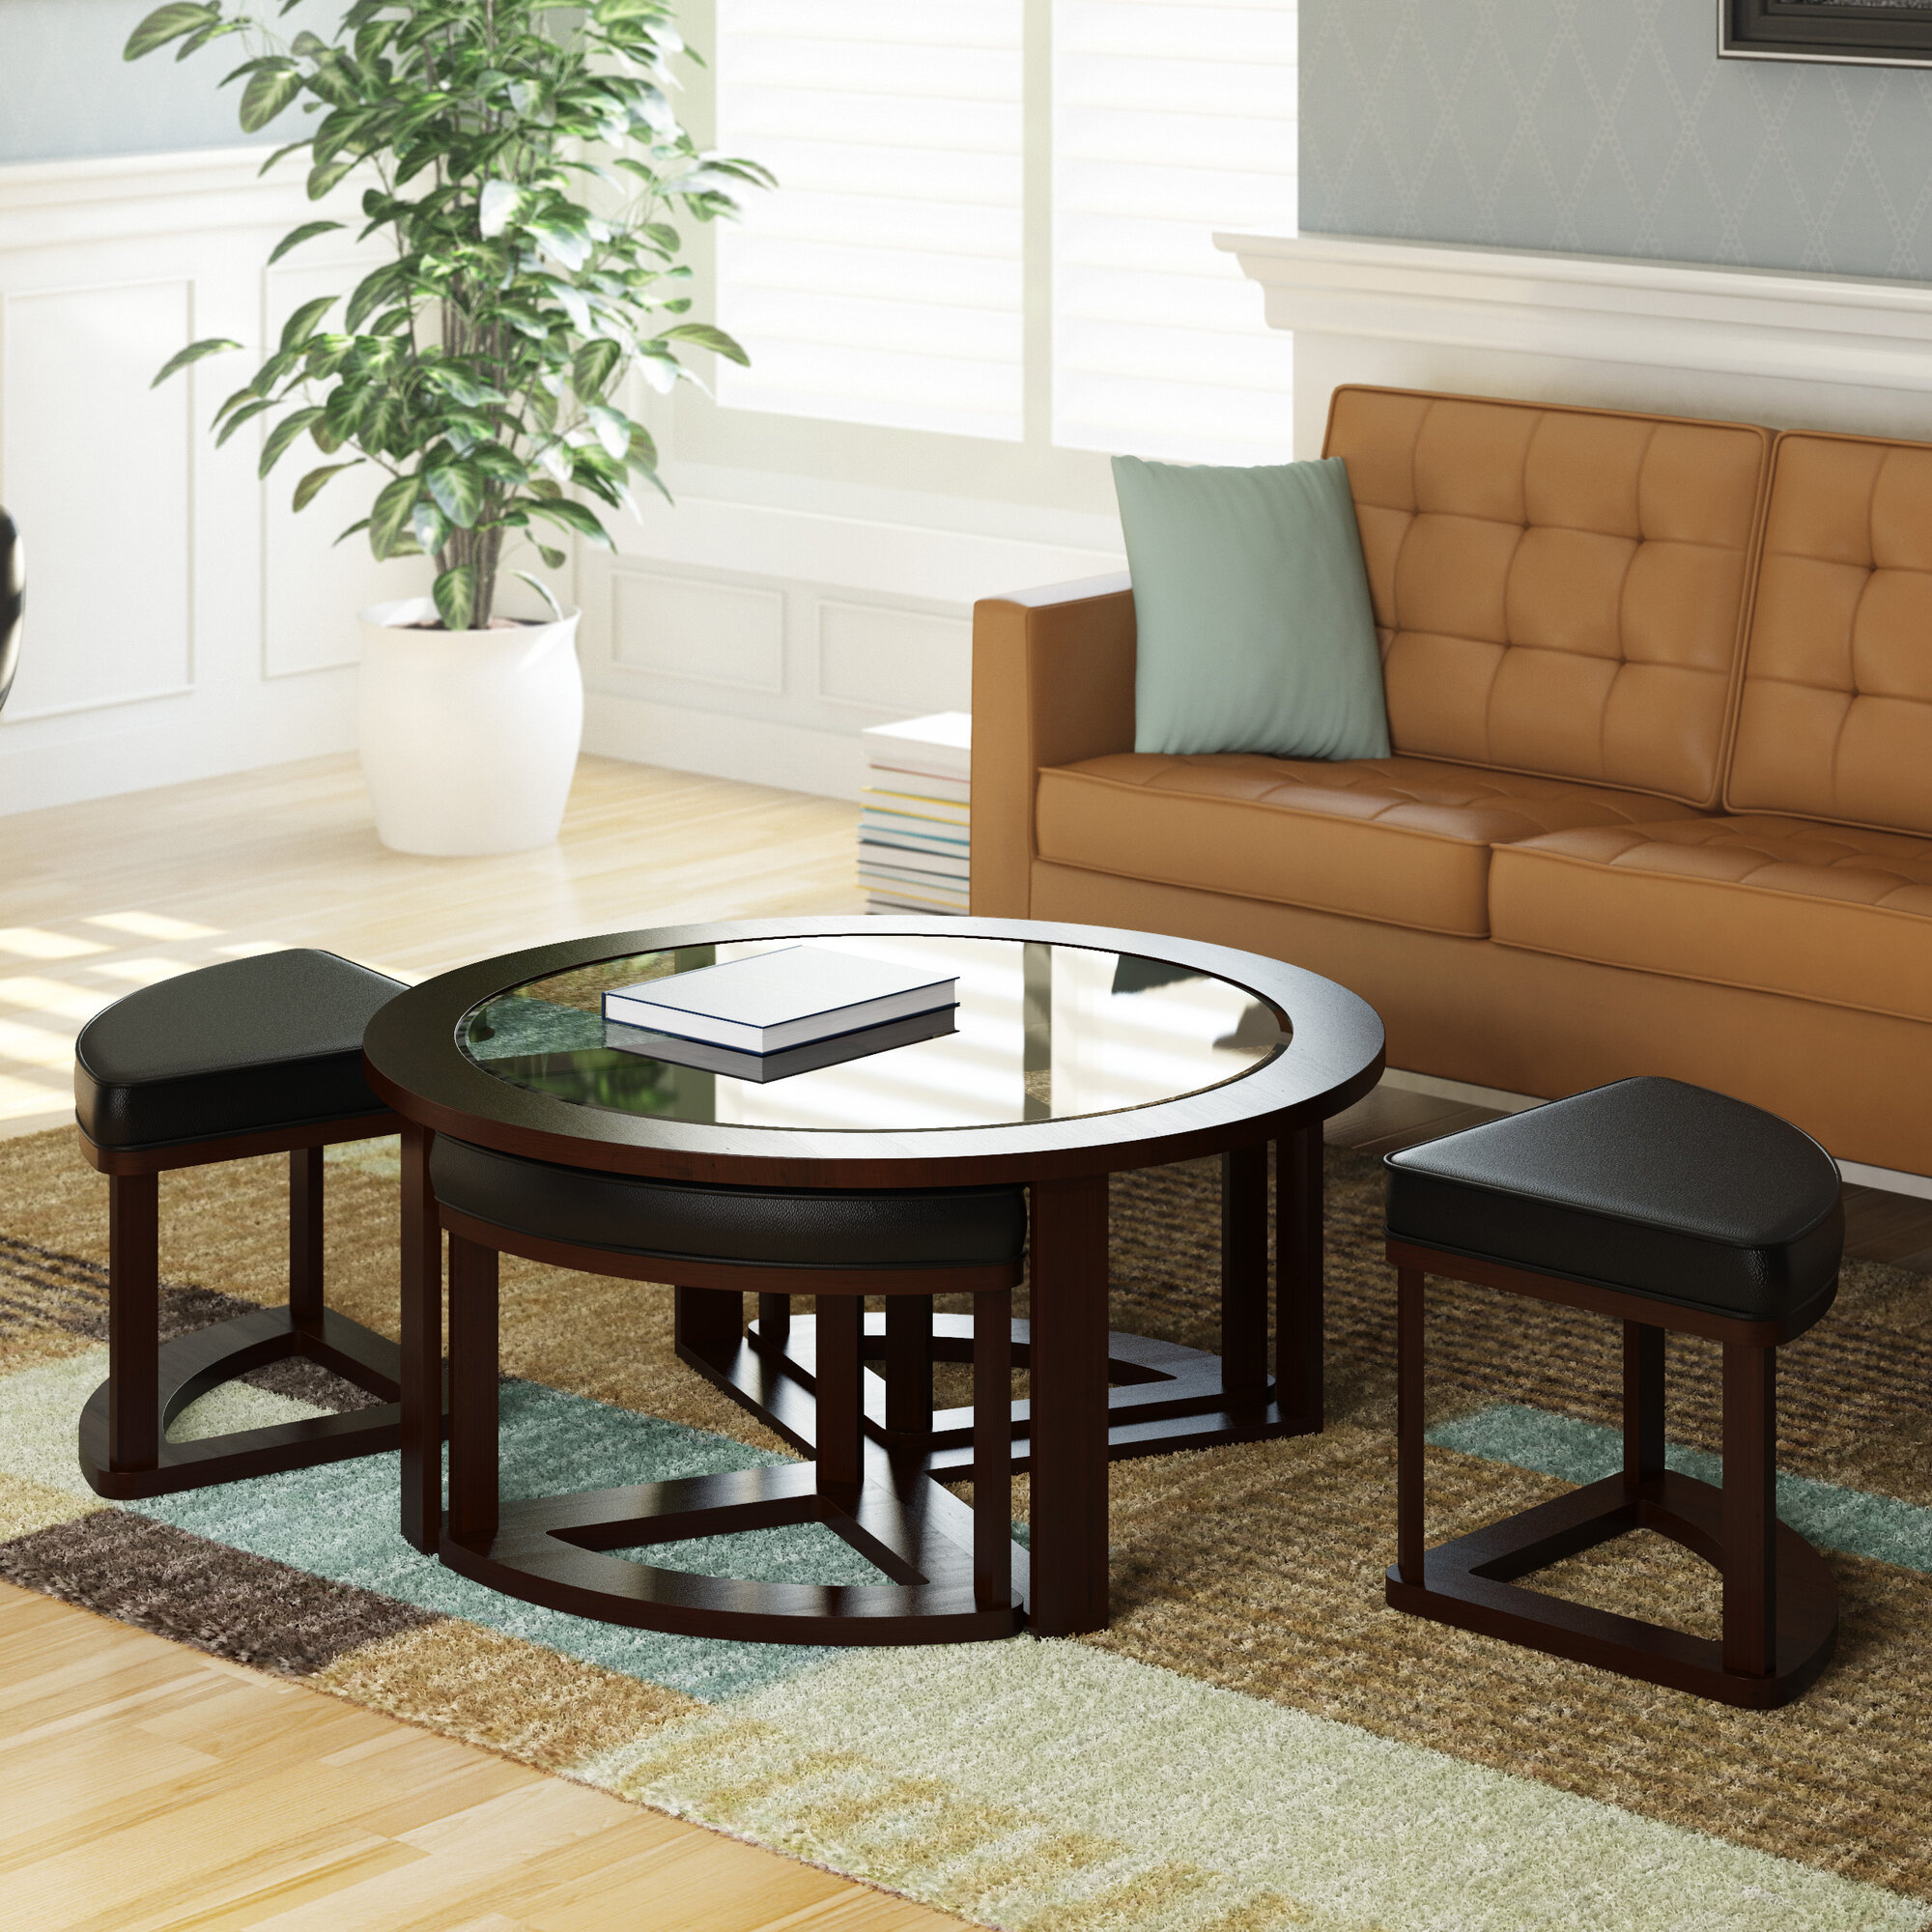 dcor design belgrove coffee table with 4 stools ebay. Black Bedroom Furniture Sets. Home Design Ideas